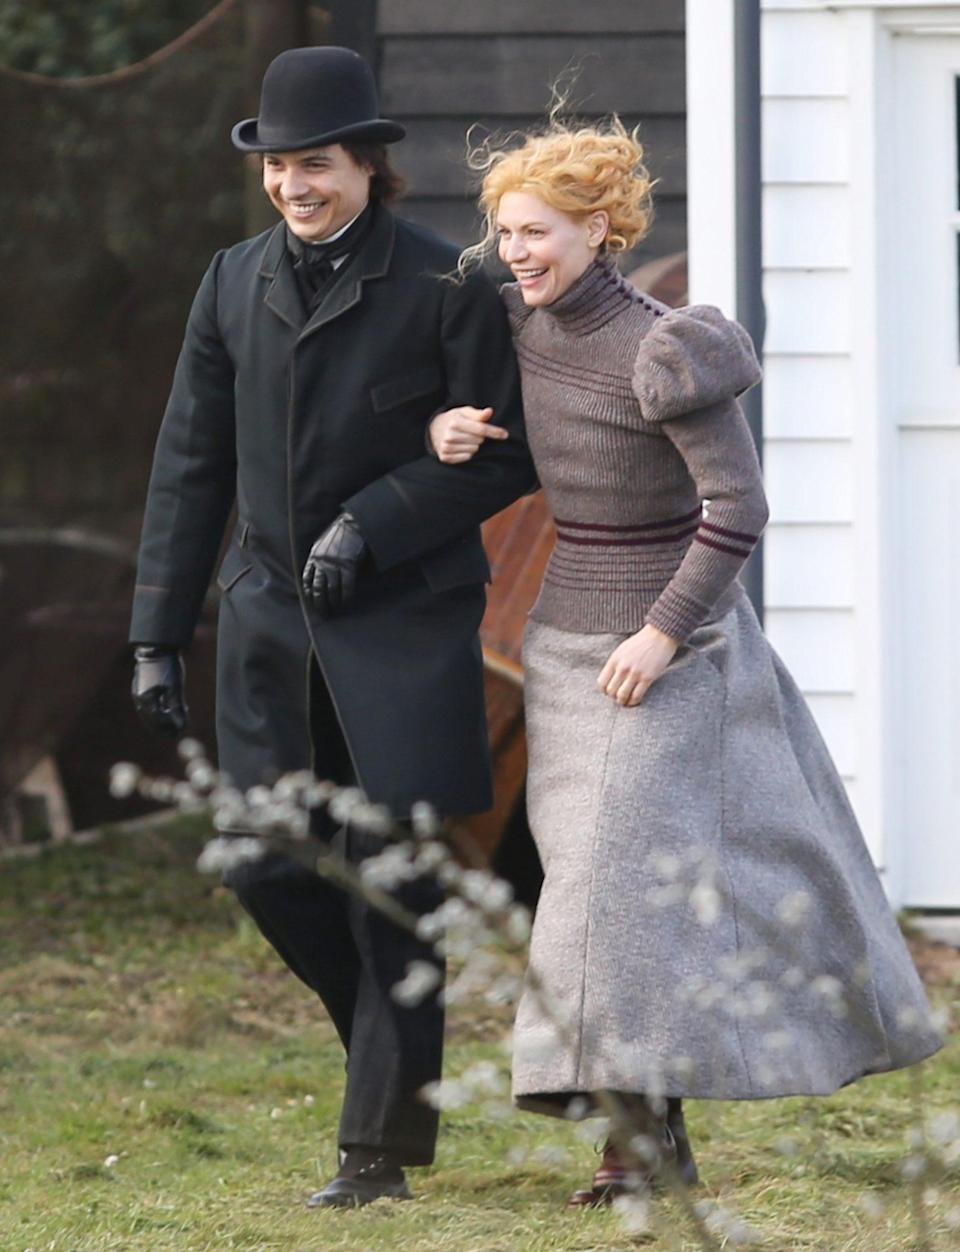 <p>Claire Danes and Frank Dillane are all smiles filming the Victorian-era period piece <i>The Essex Serpent</i> on Tuesday in London. </p>